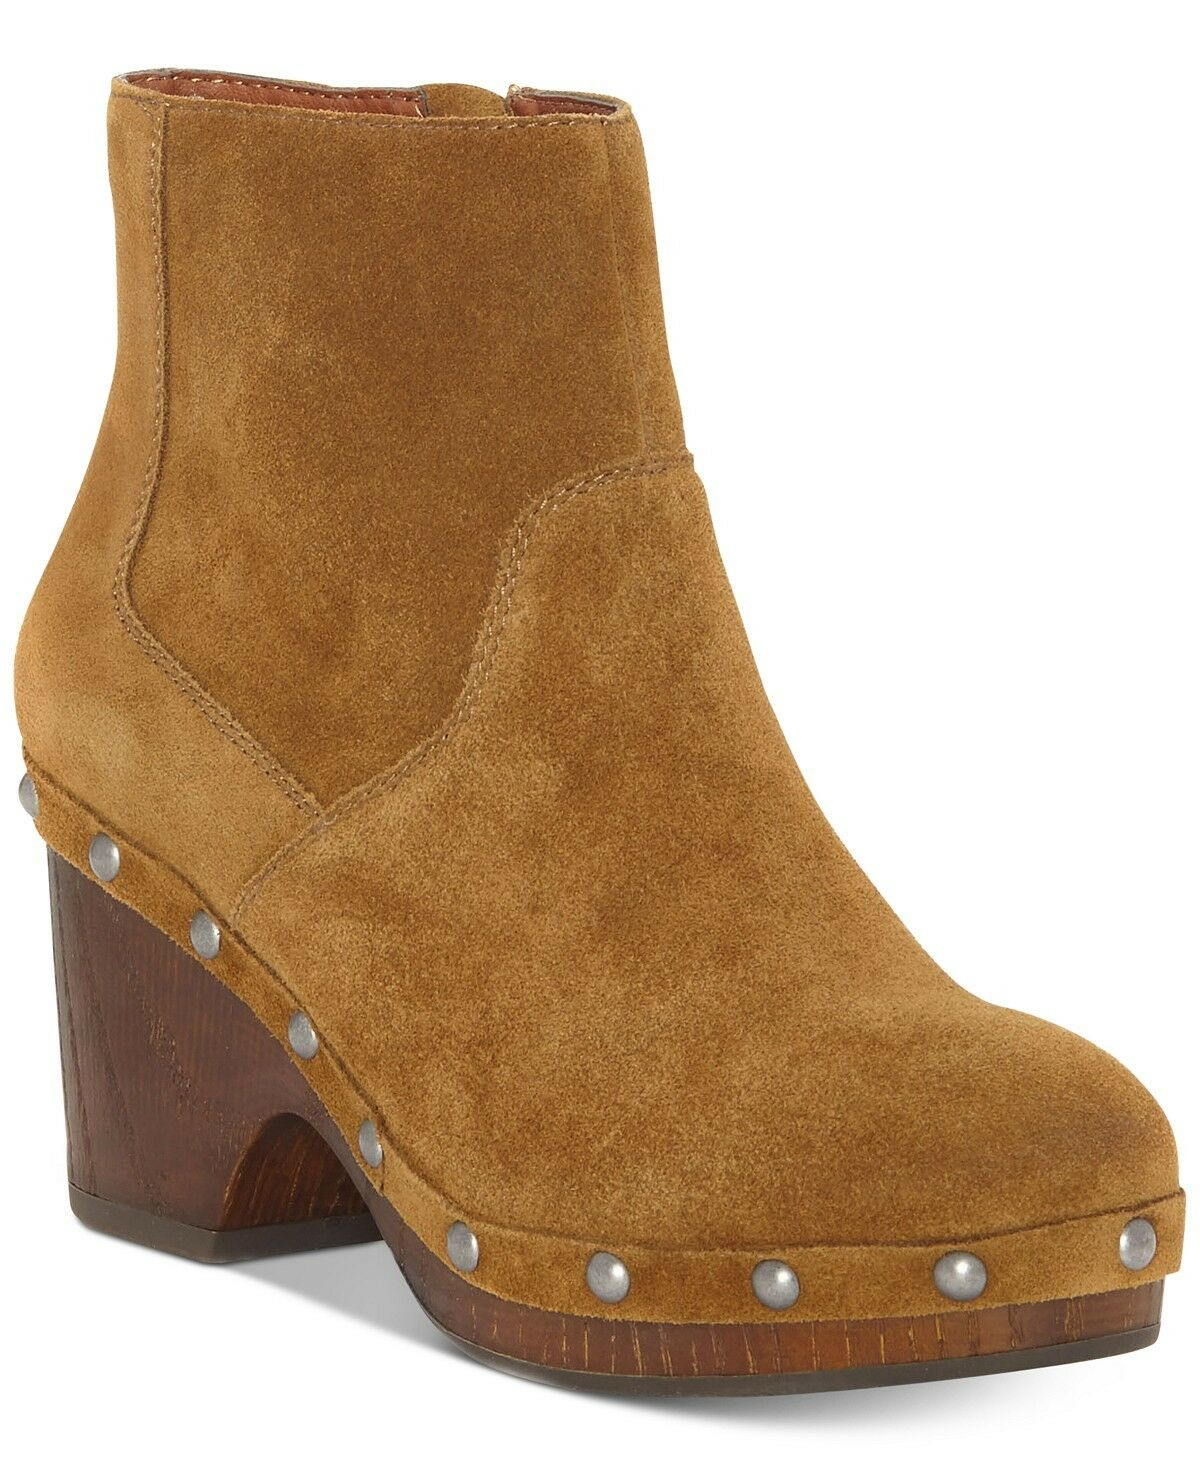 New Lucky Brand Women Yasamin Studded Leather Booties Variety colors&Sizes colors&Sizes colors&Sizes 112612